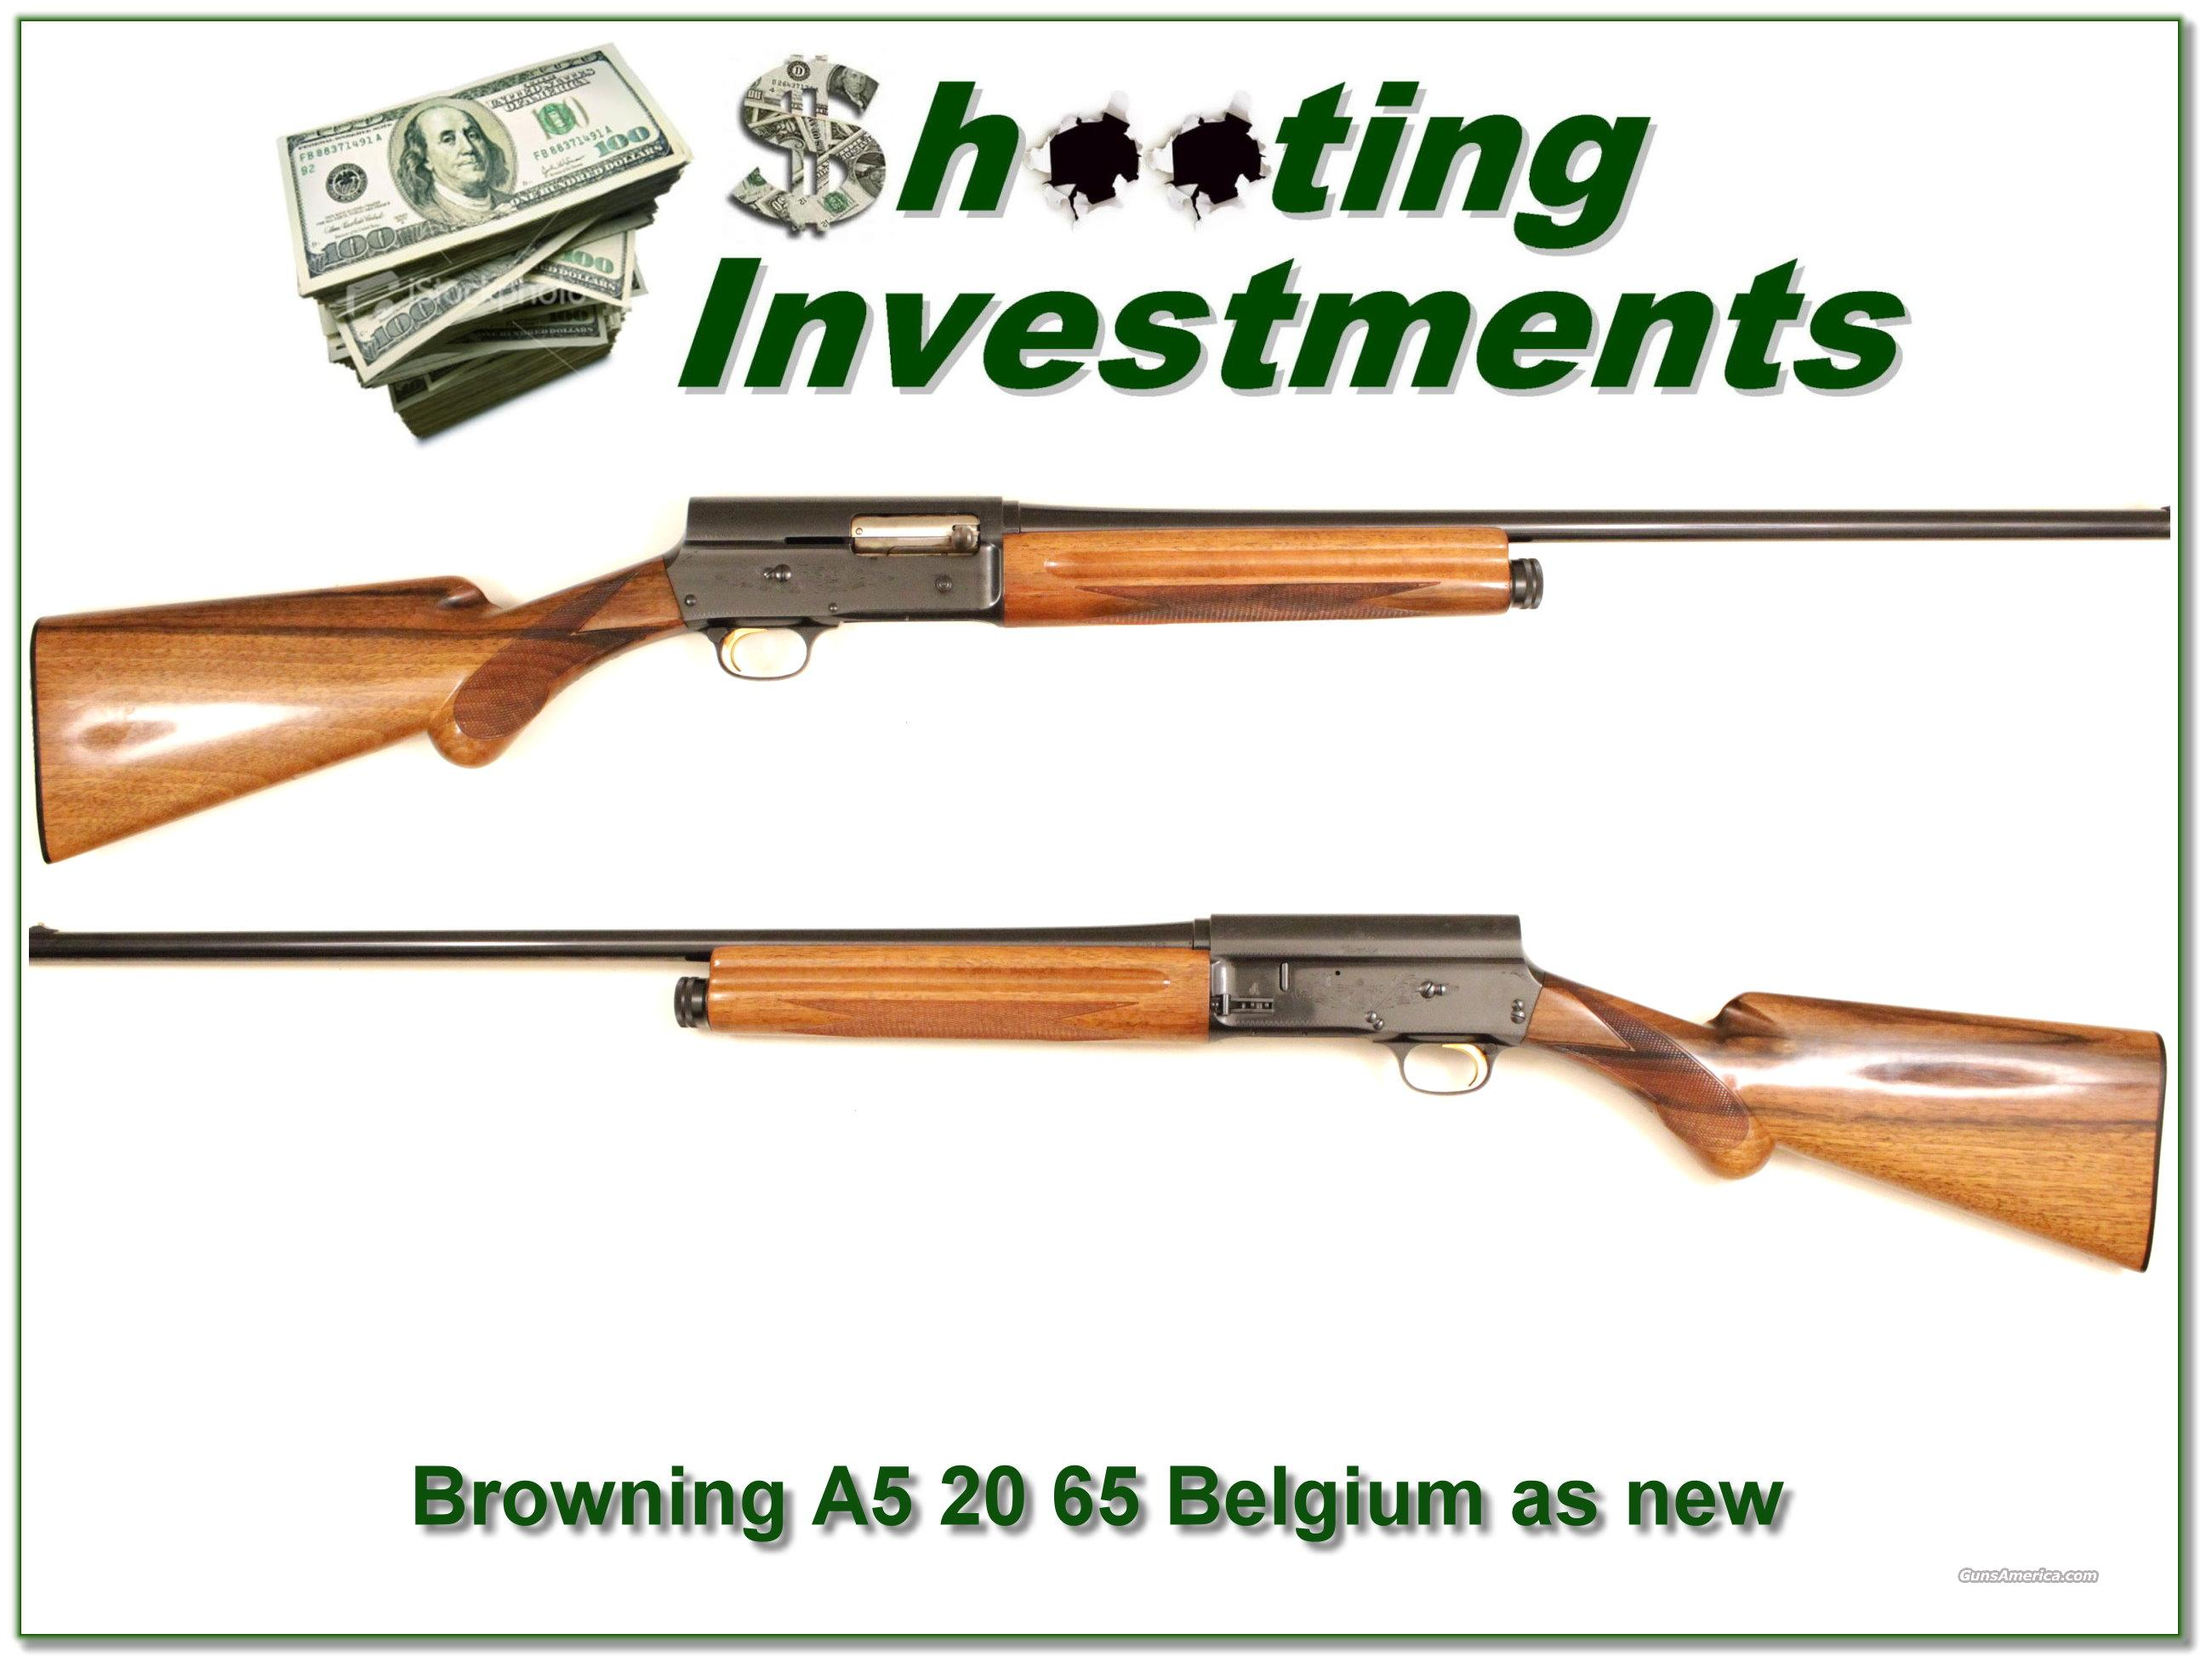 Browning A5 20 gauge 65 Belgium near new!  Guns > Shotguns > Browning Shotguns > Autoloaders > Hunting